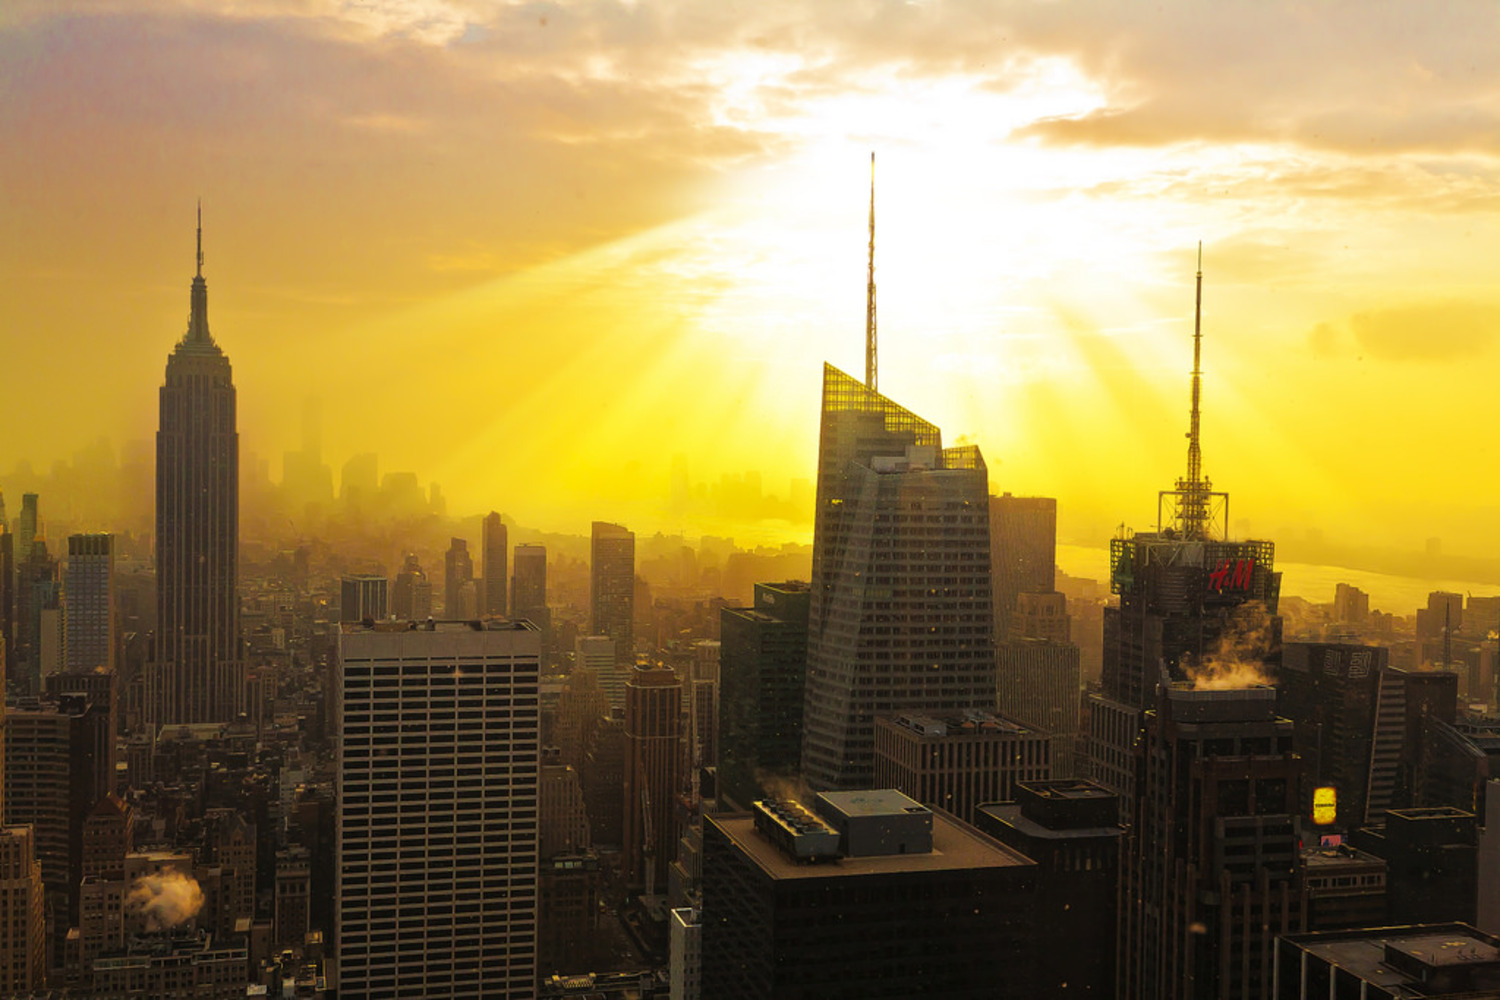 The last light of the year | The last sunset of 2013 over Manhattan, seen from the Top of the Rock.  トップ・オブ・ザ・ロック展望台よりの2013年の最後の光。